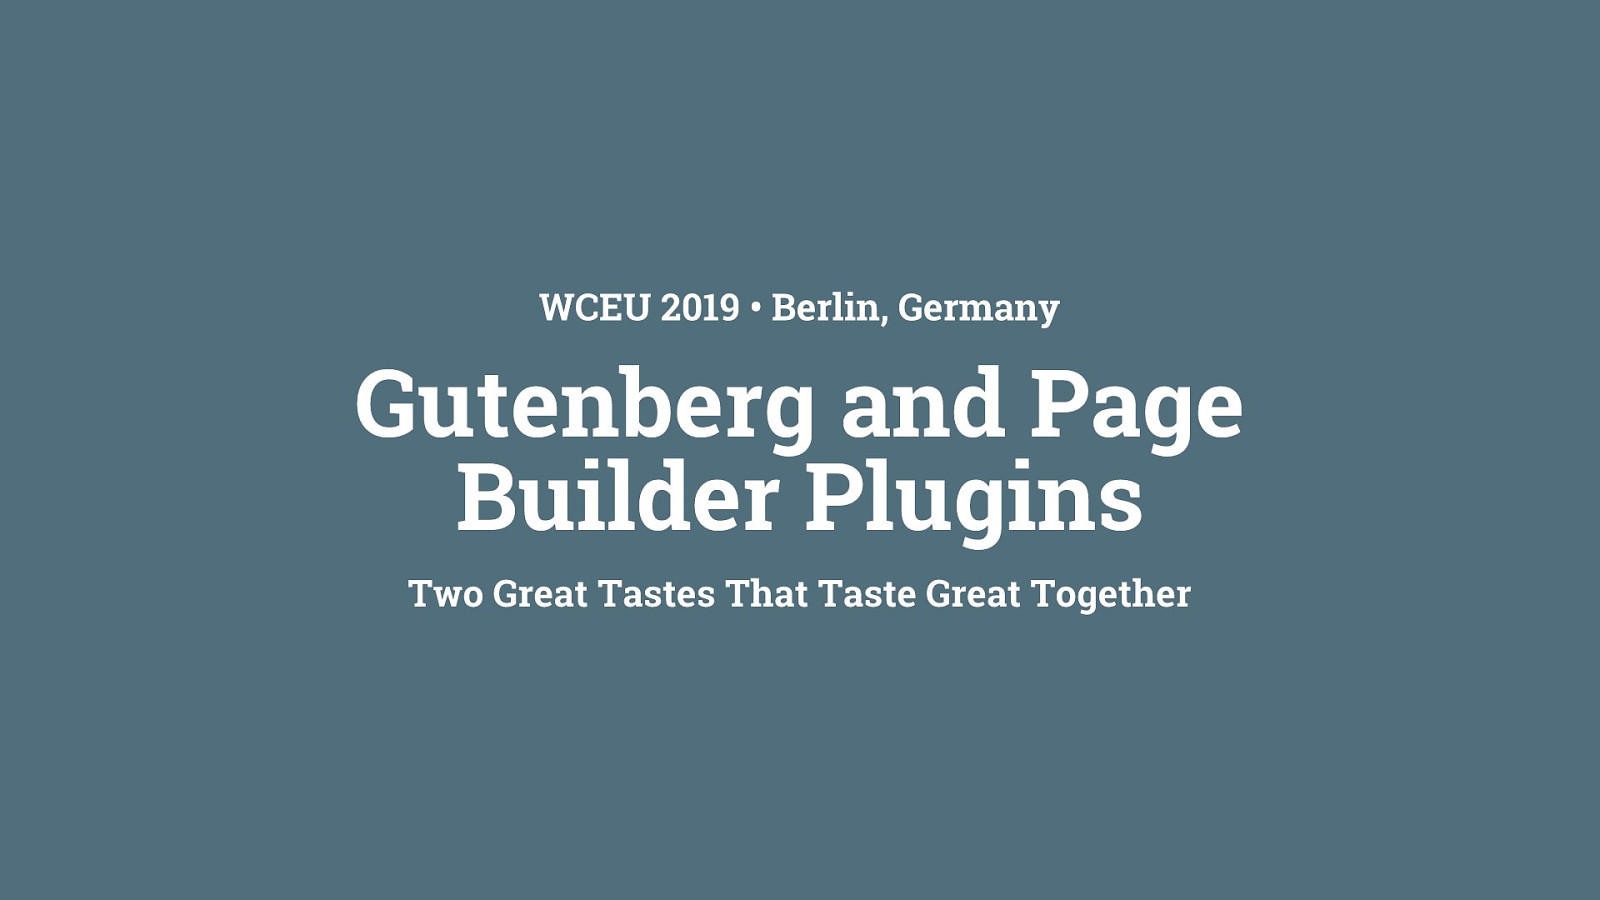 Gutenberg and page builder plugins: Two great tastes that taste great together